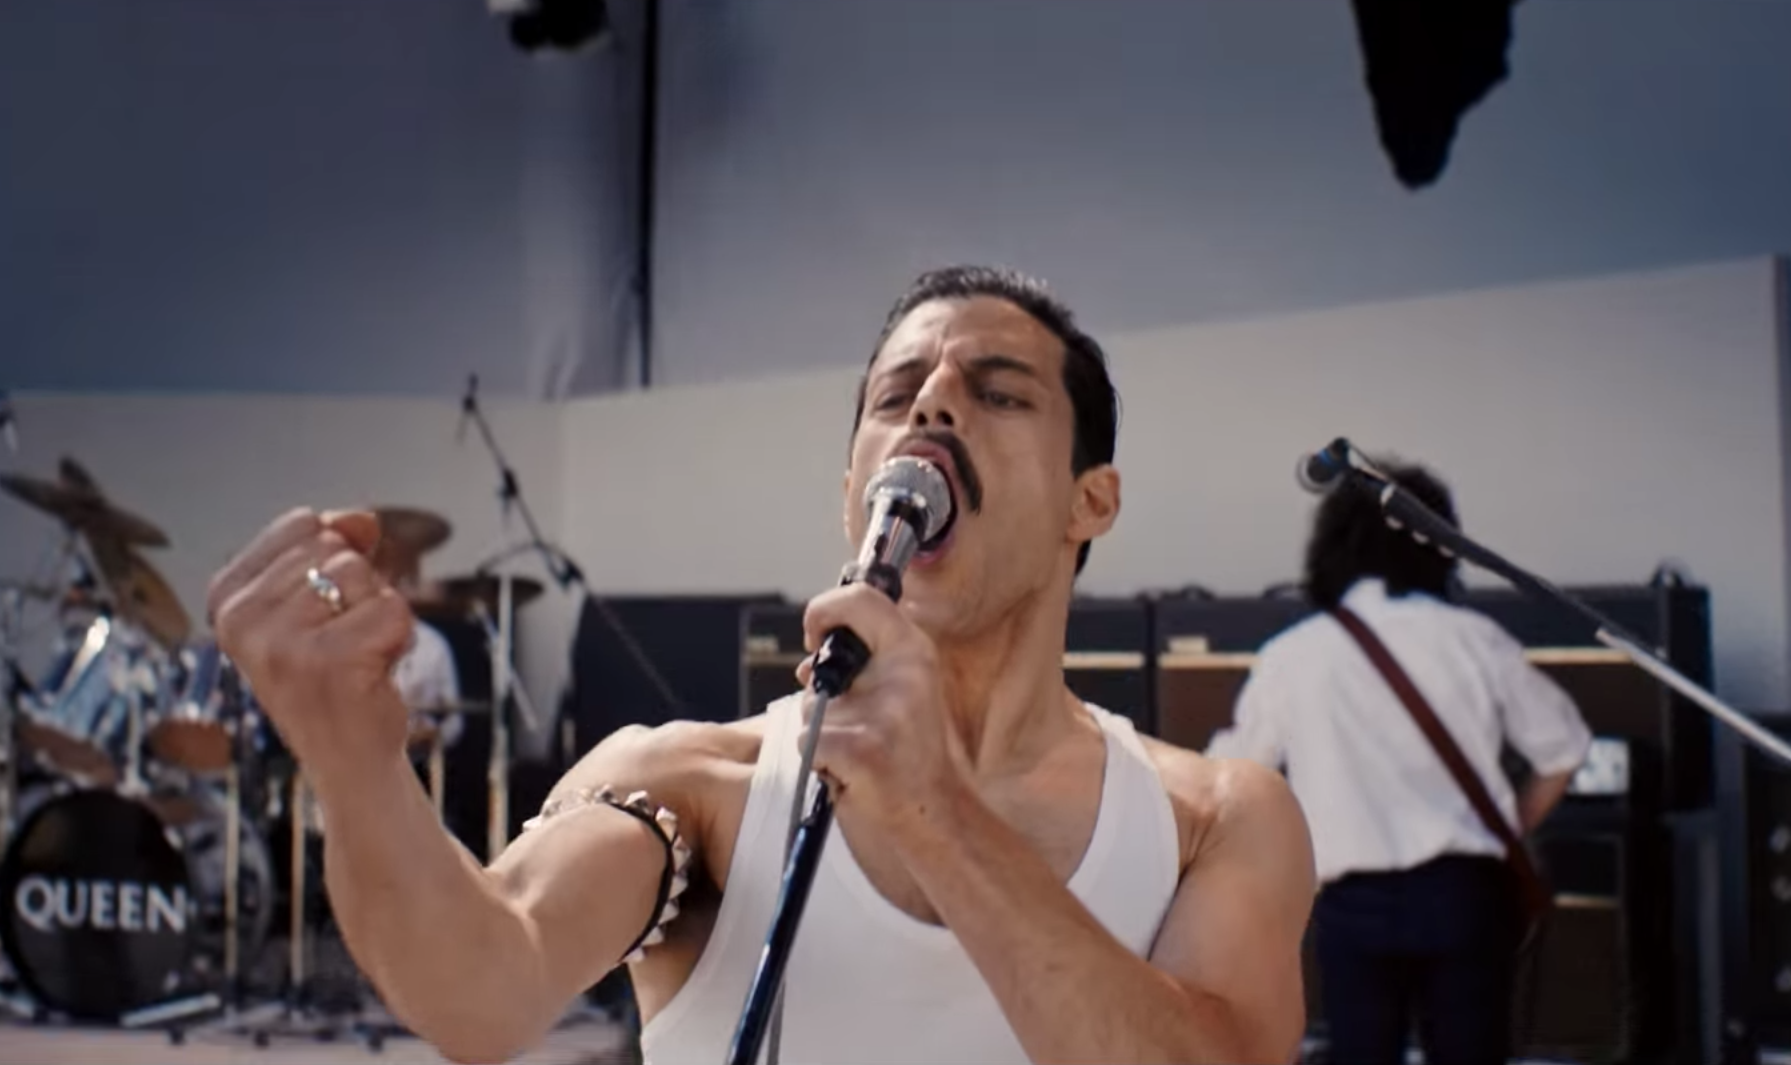 Check Out the First Teaser for BOHEMIAN RHAPSODY Starring Rami Malek